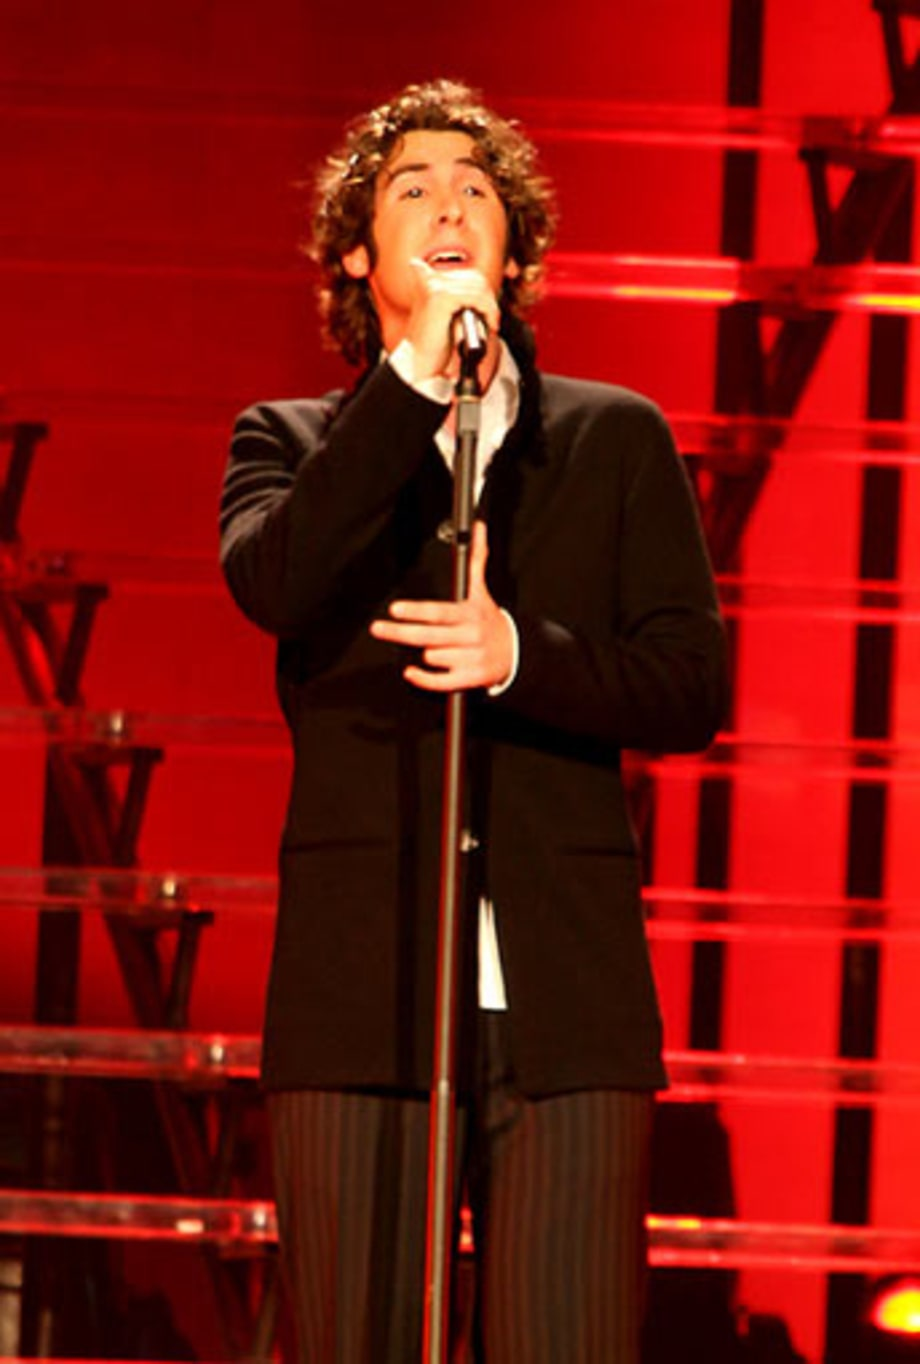 Josh Groban 13 - Atlanta, GA 2/1/05 large